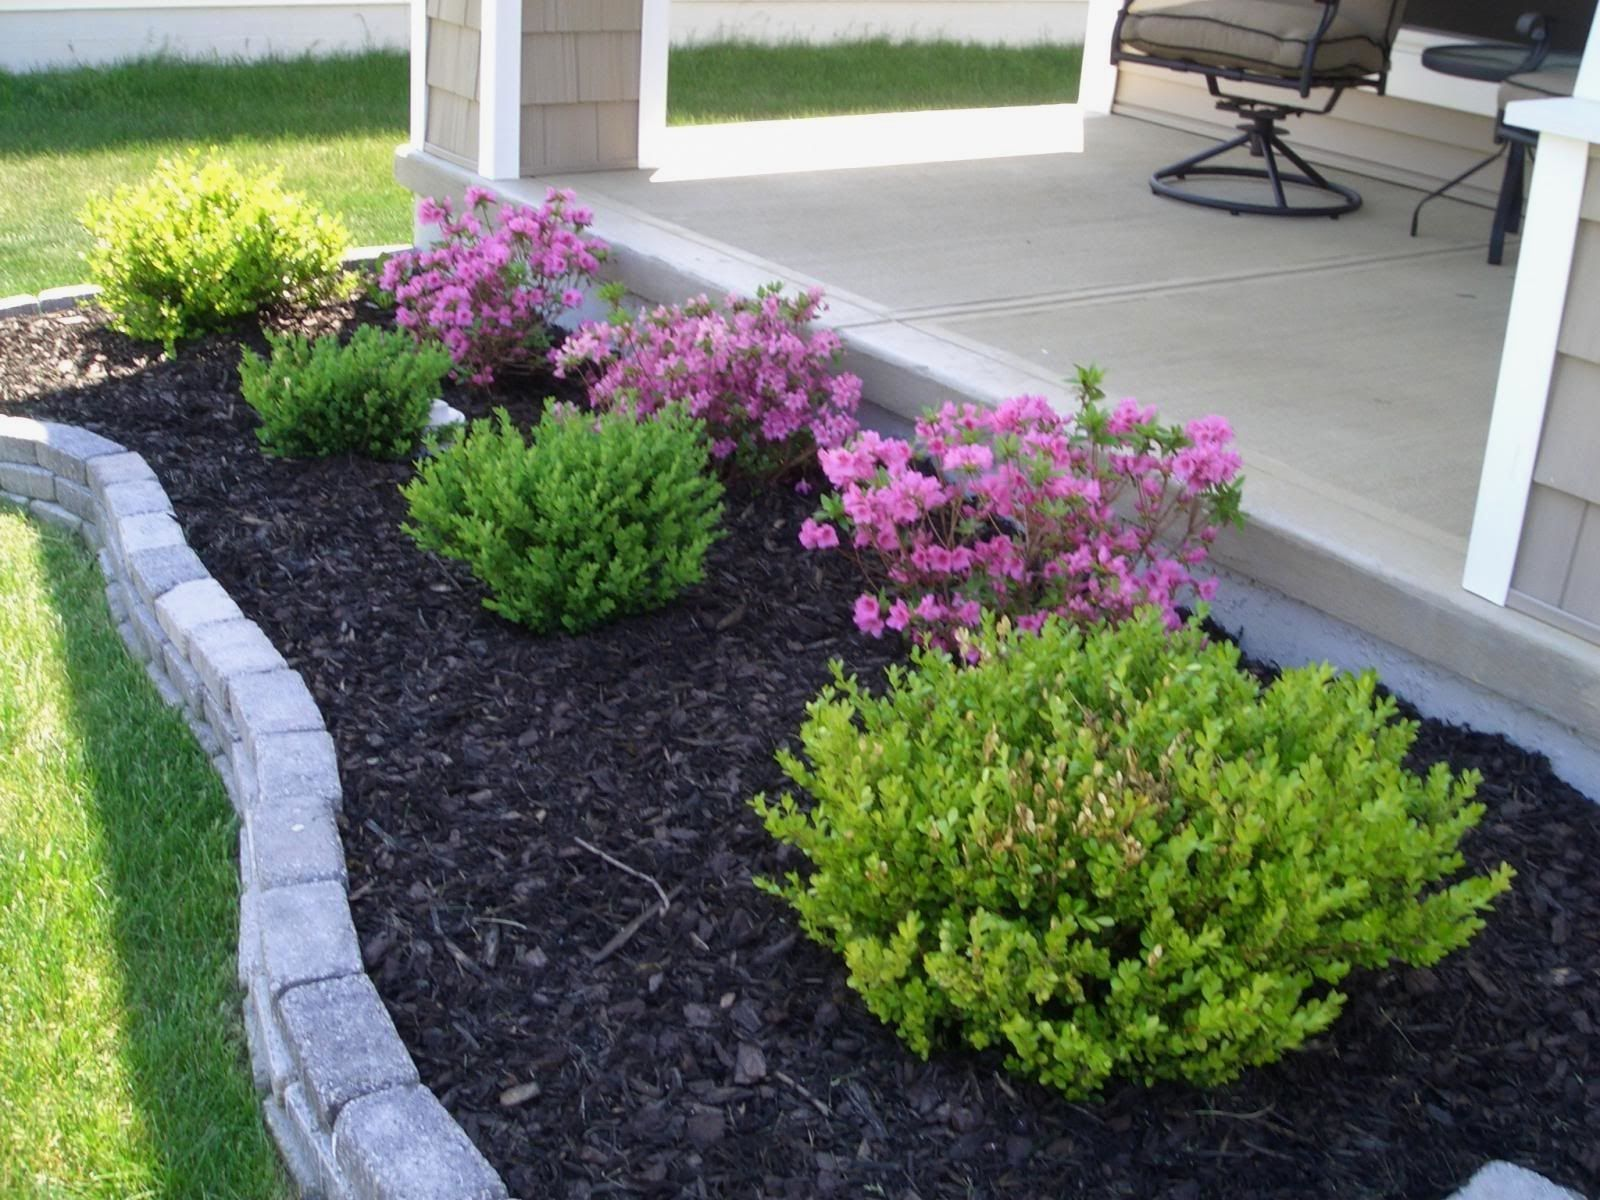 Landscaping ideas for front yard with porch   Awesome Landscape Ideas for you to try for your backyard  Easy